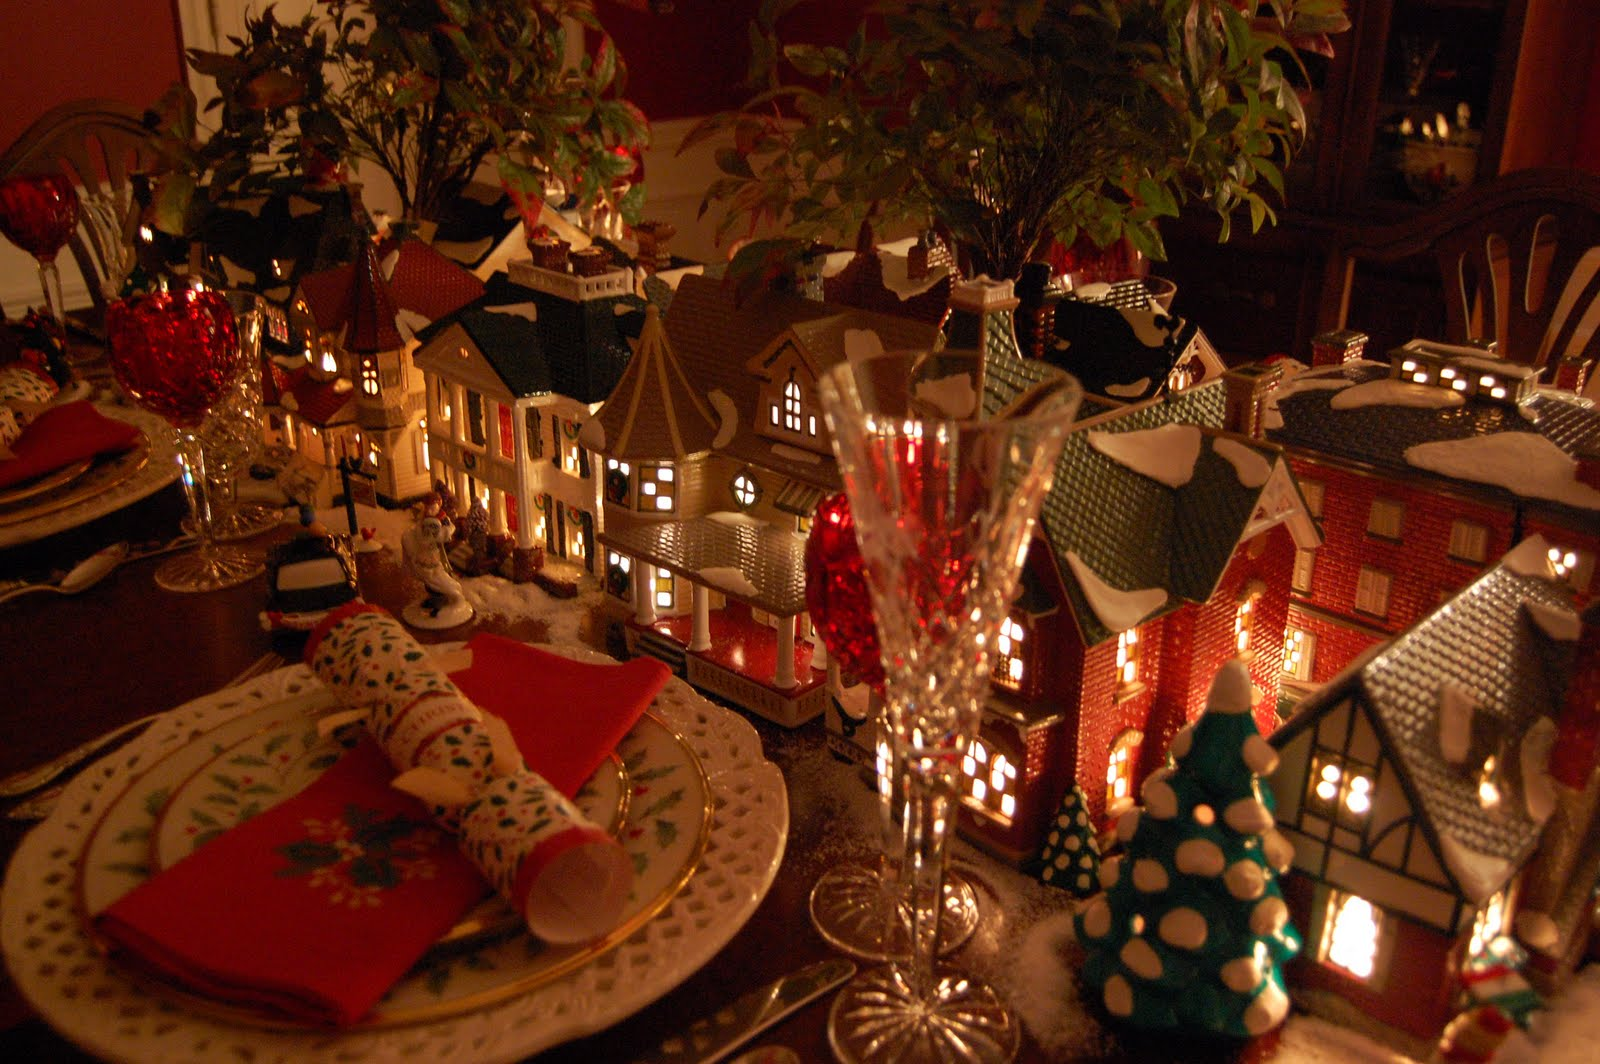 Christmas Table Setting Tablescape With Dept. 56 Lit